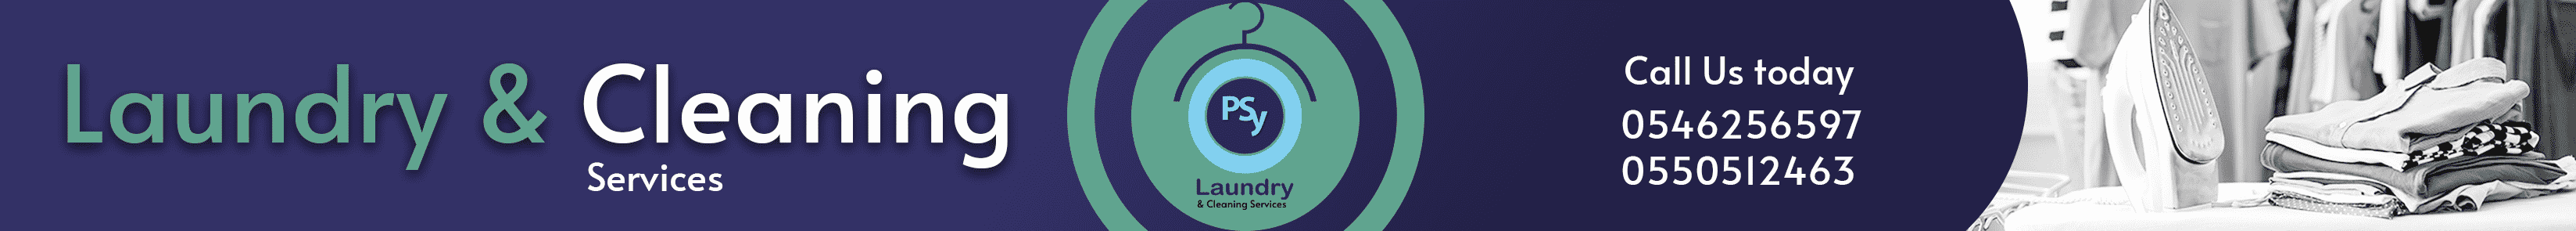 Psy Laundry service is one of ghana most reliable laundry service company.        we have the tood and materisla to make your clothing squickly cleaan to look new all the time.